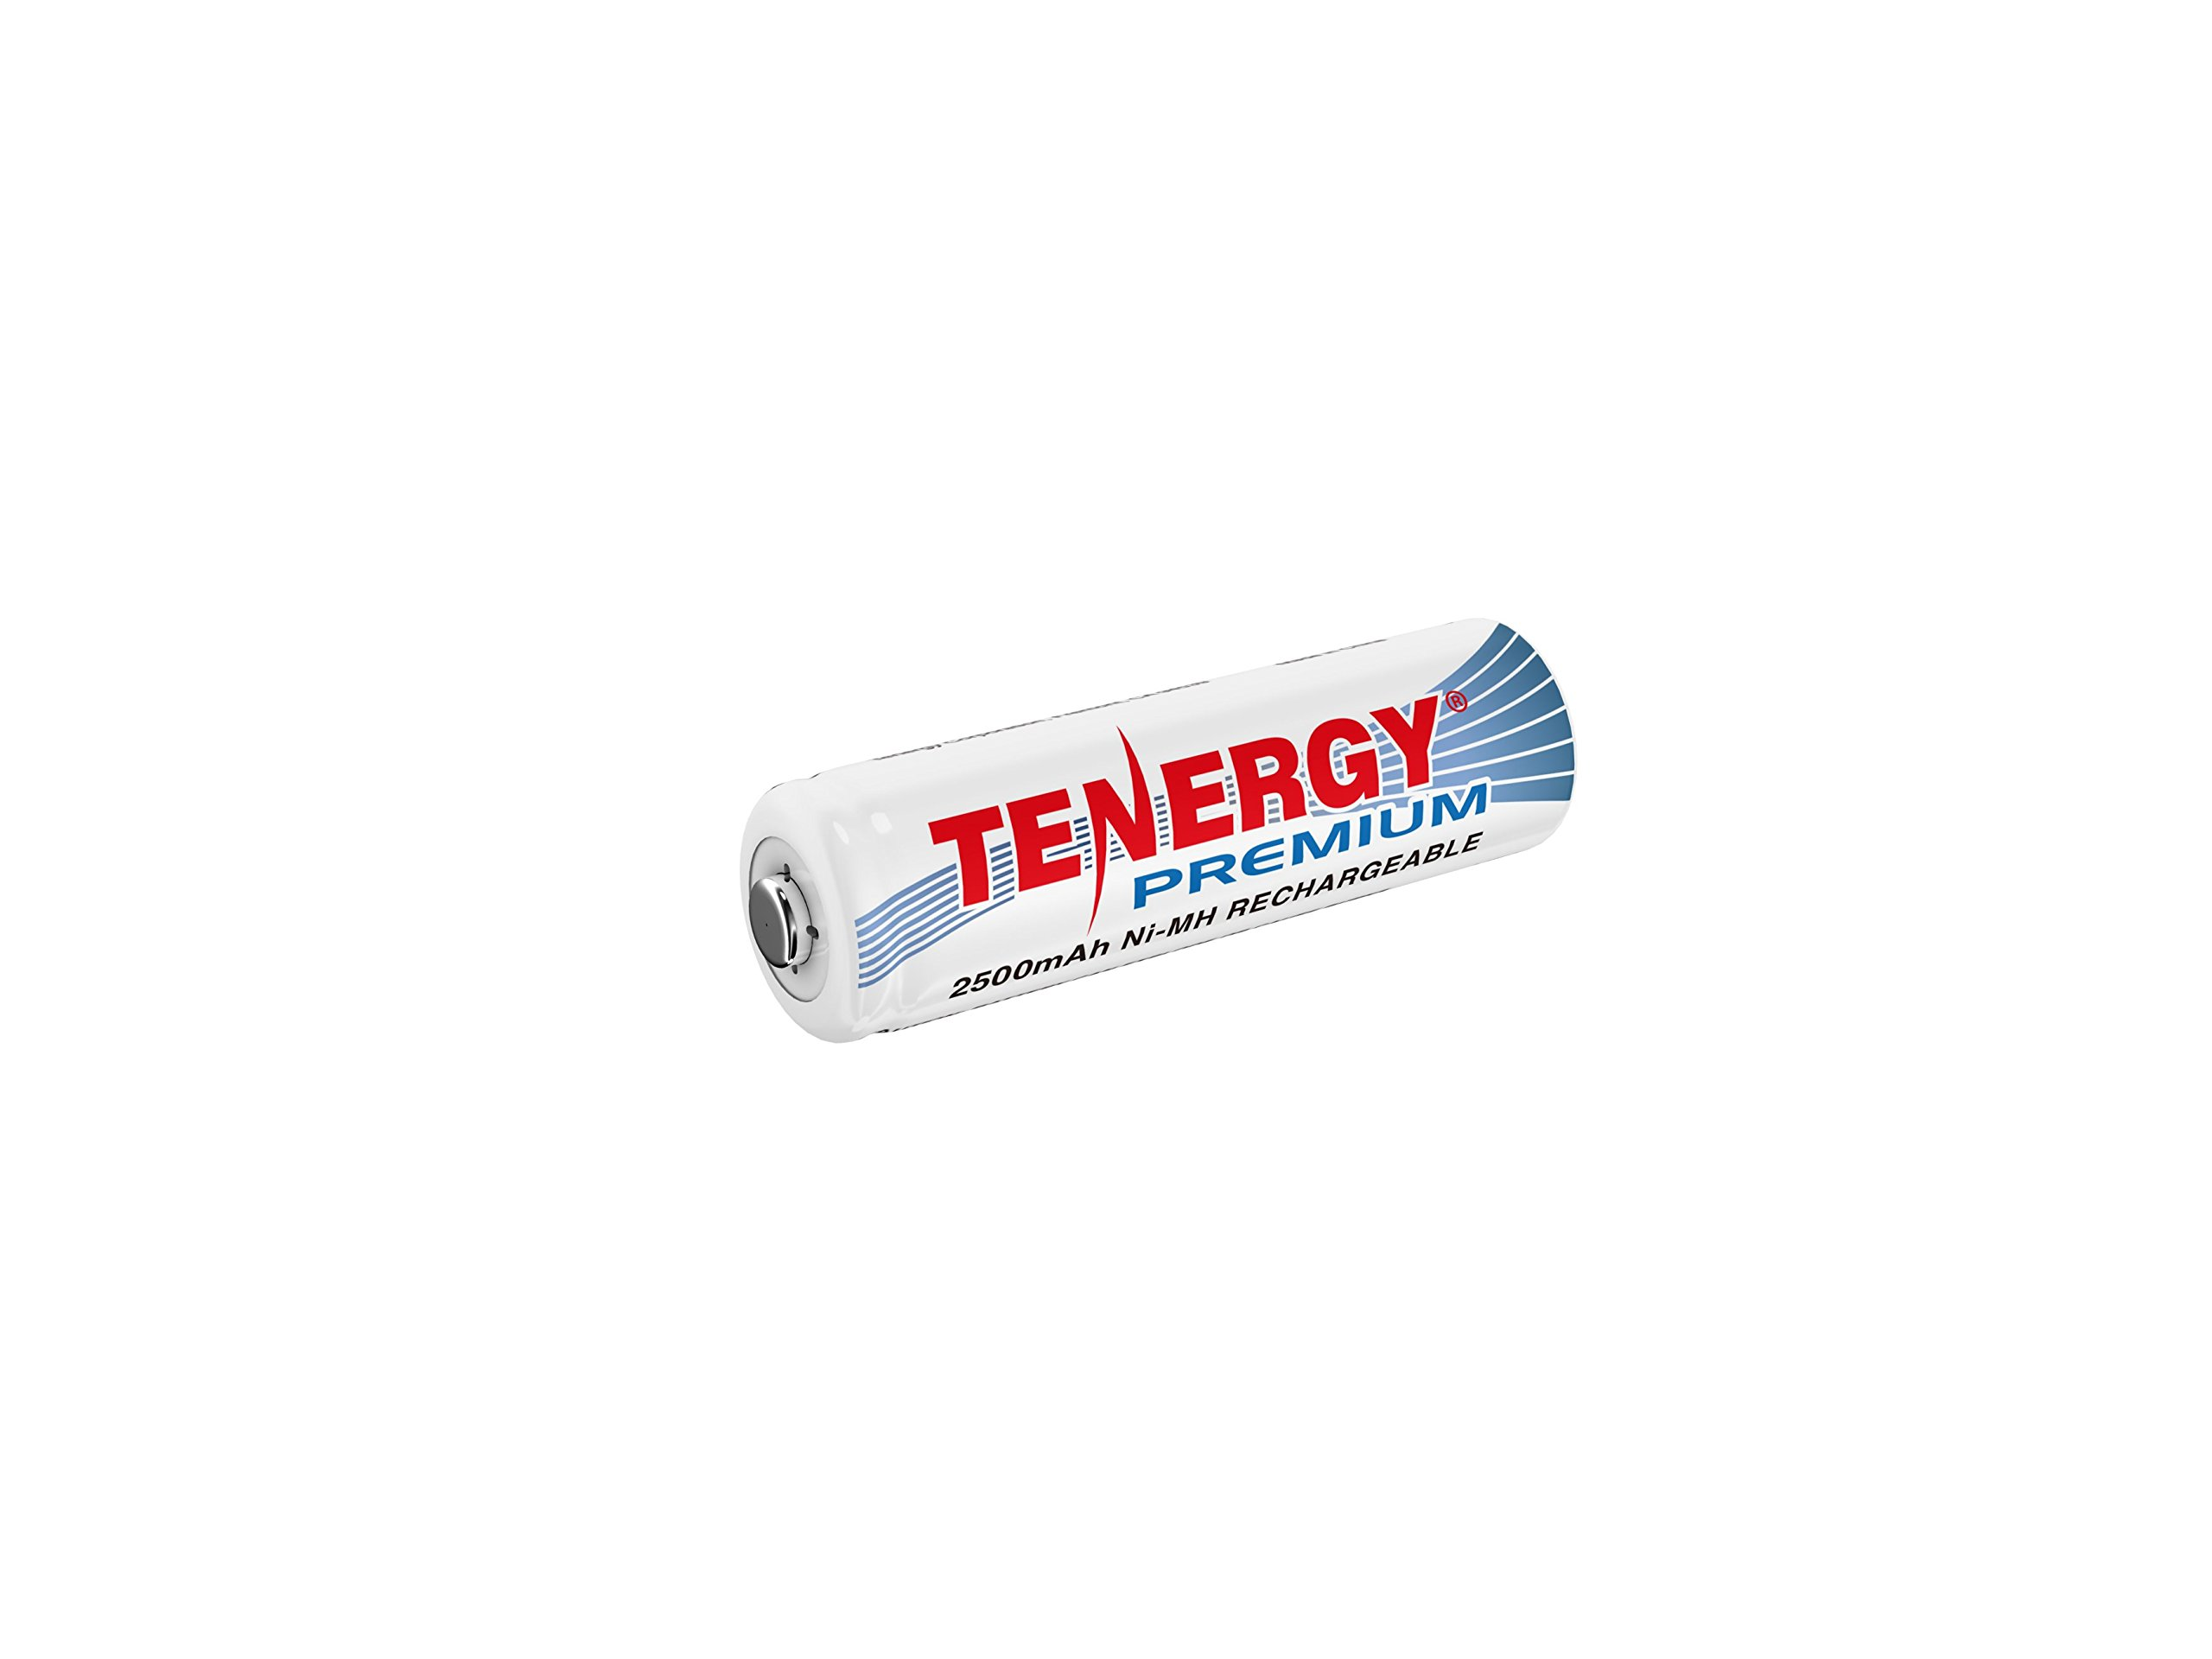 Tenergy Premium Rechargeable AA Battery, High Capacity 2500mAh NiMH AA Battery, AA Cell Battery, 1-Pack